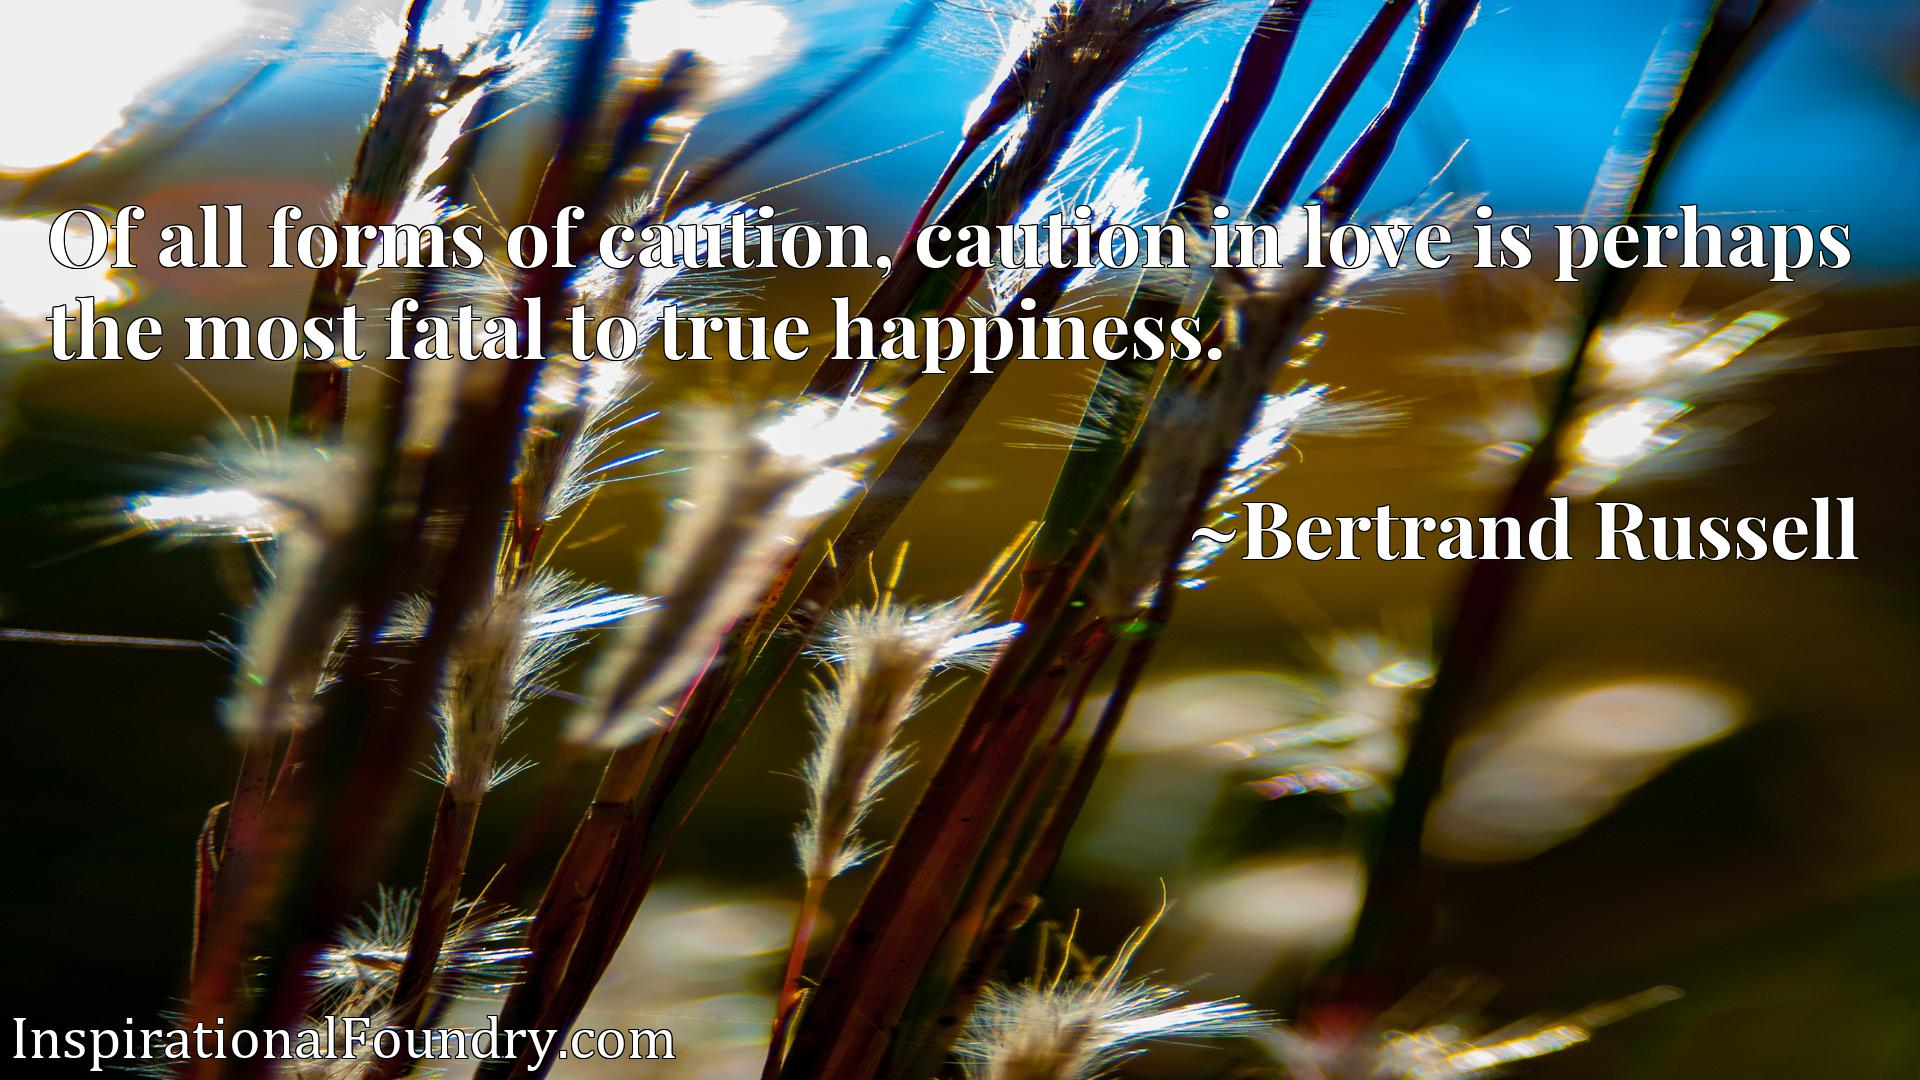 Quote Picture :Of all forms of caution, caution in love is perhaps the most fatal to true happiness.